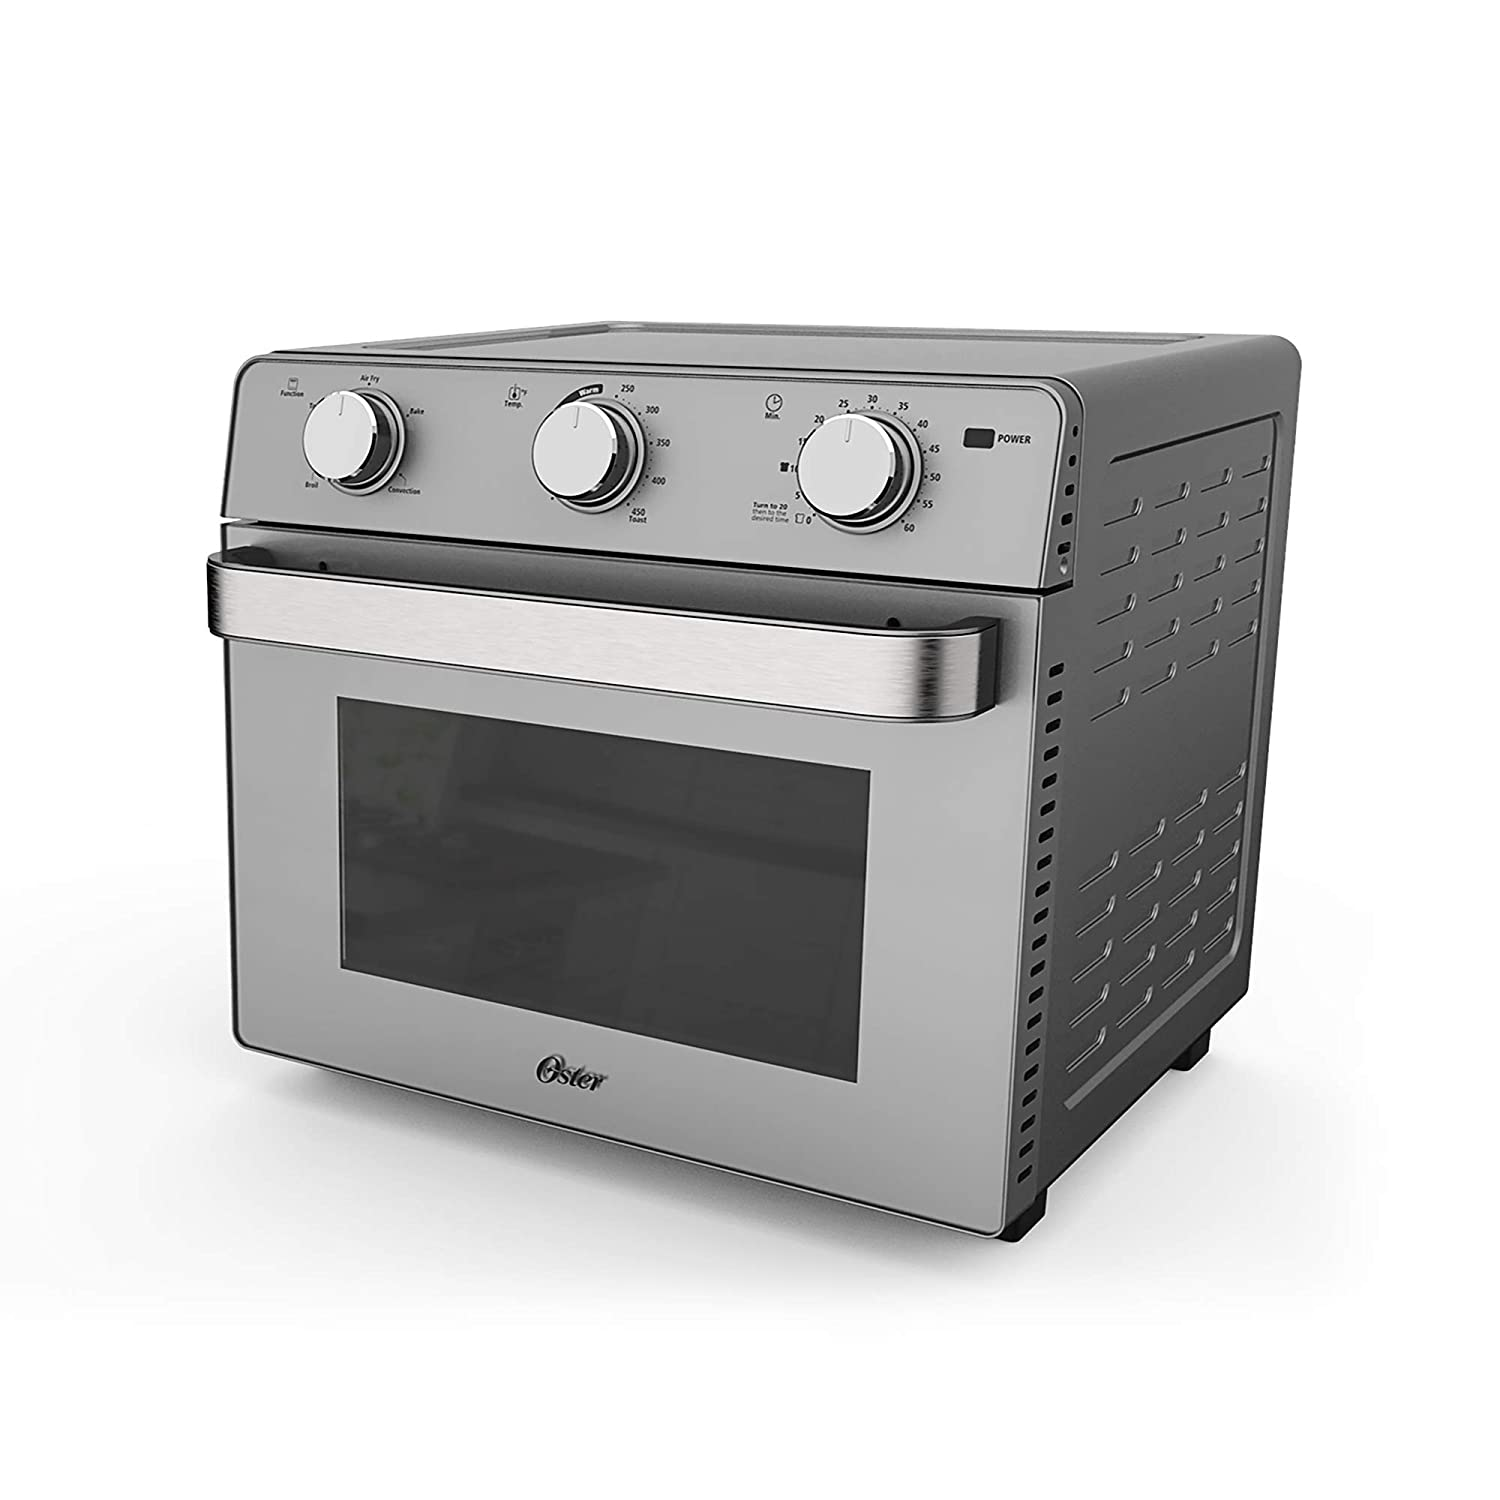 Oster TSSTTVMAF1 Countertop Oven with Air Fryer